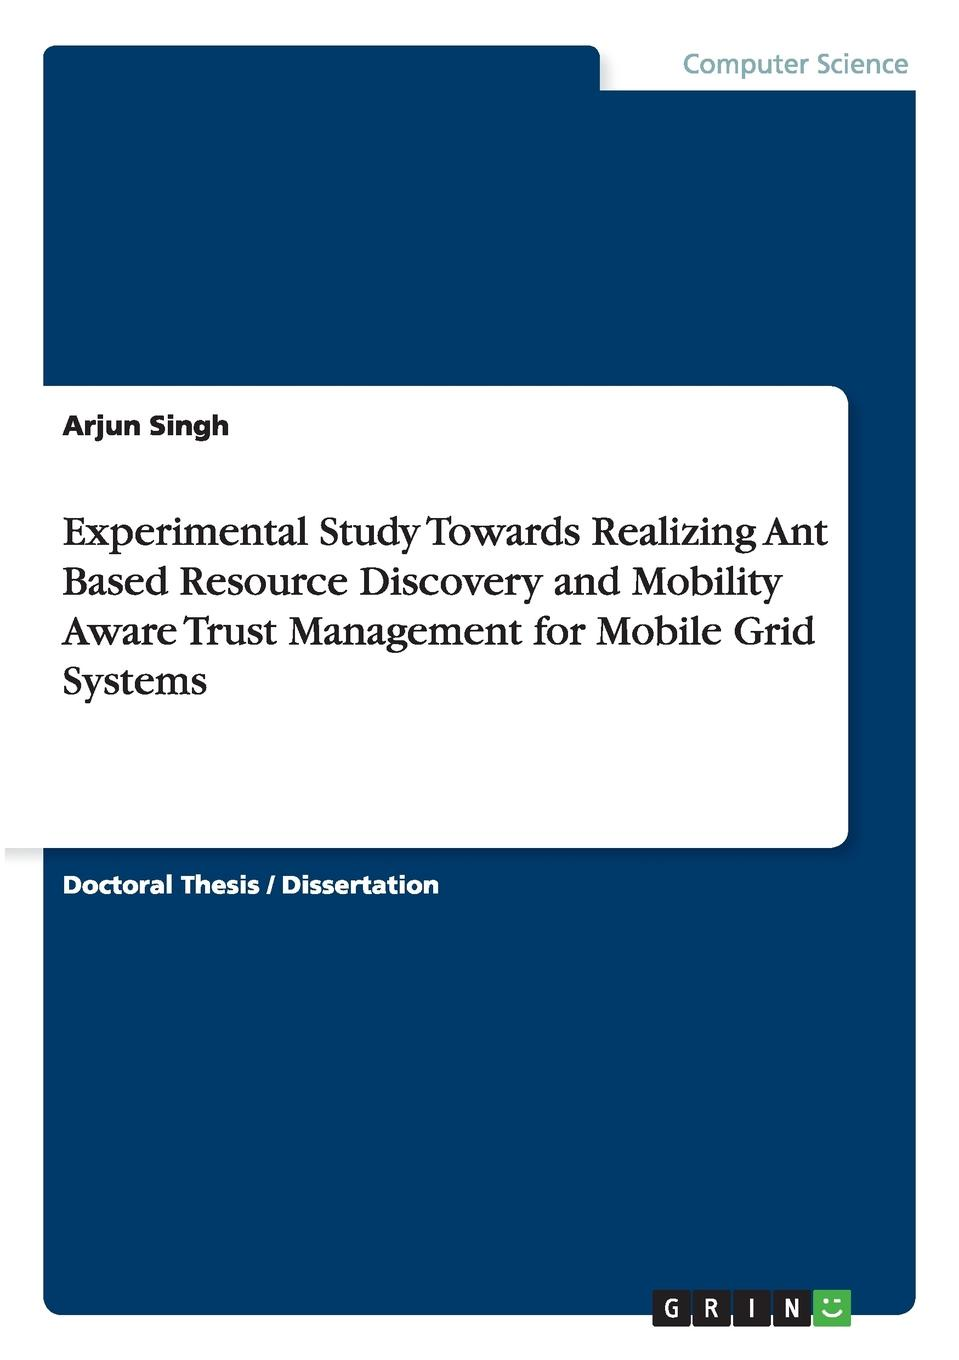 Фото - Arjun Singh Experimental Study Towards Realizing Ant Based Resource Discovery and Mobility Aware Trust Management for Mobile Grid Systems zomaya albert y energy efficient distributed computing systems isbn 9781118341988